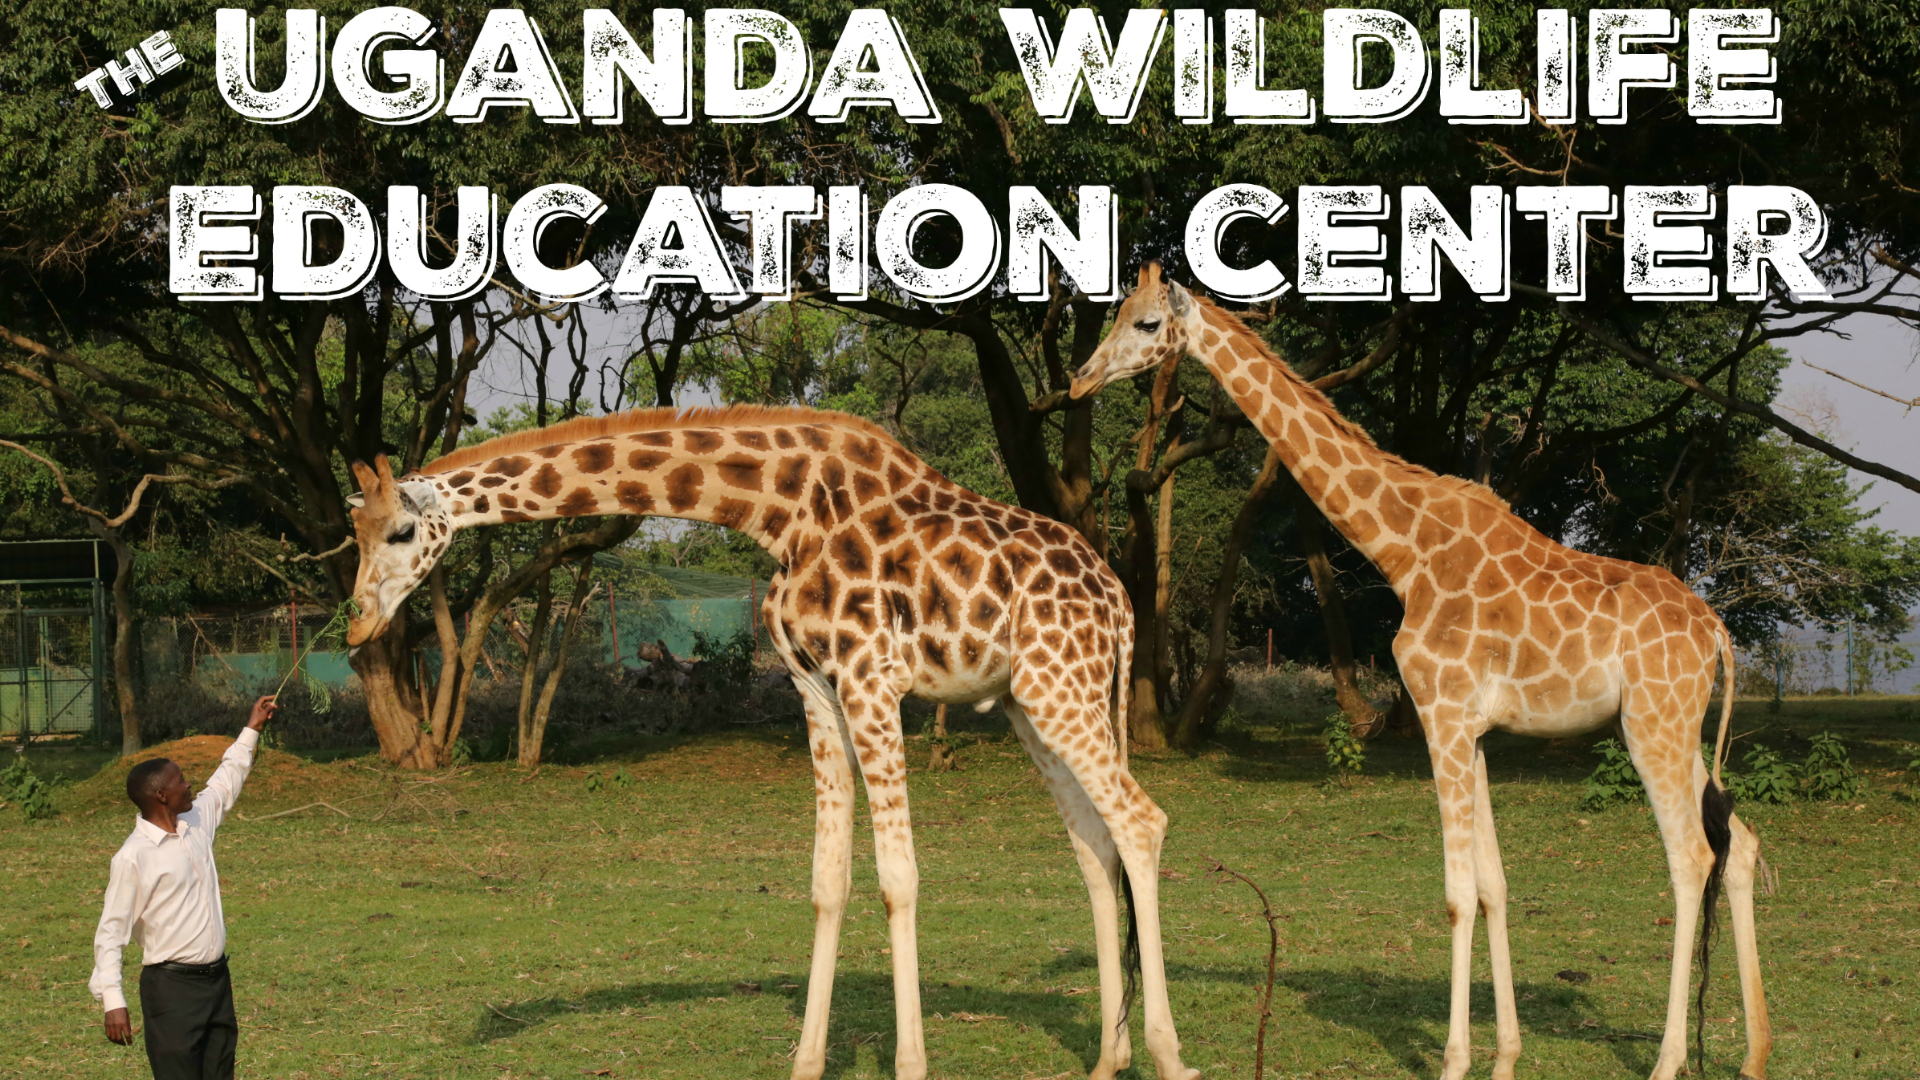 Uganda Wildlife Education Center Film